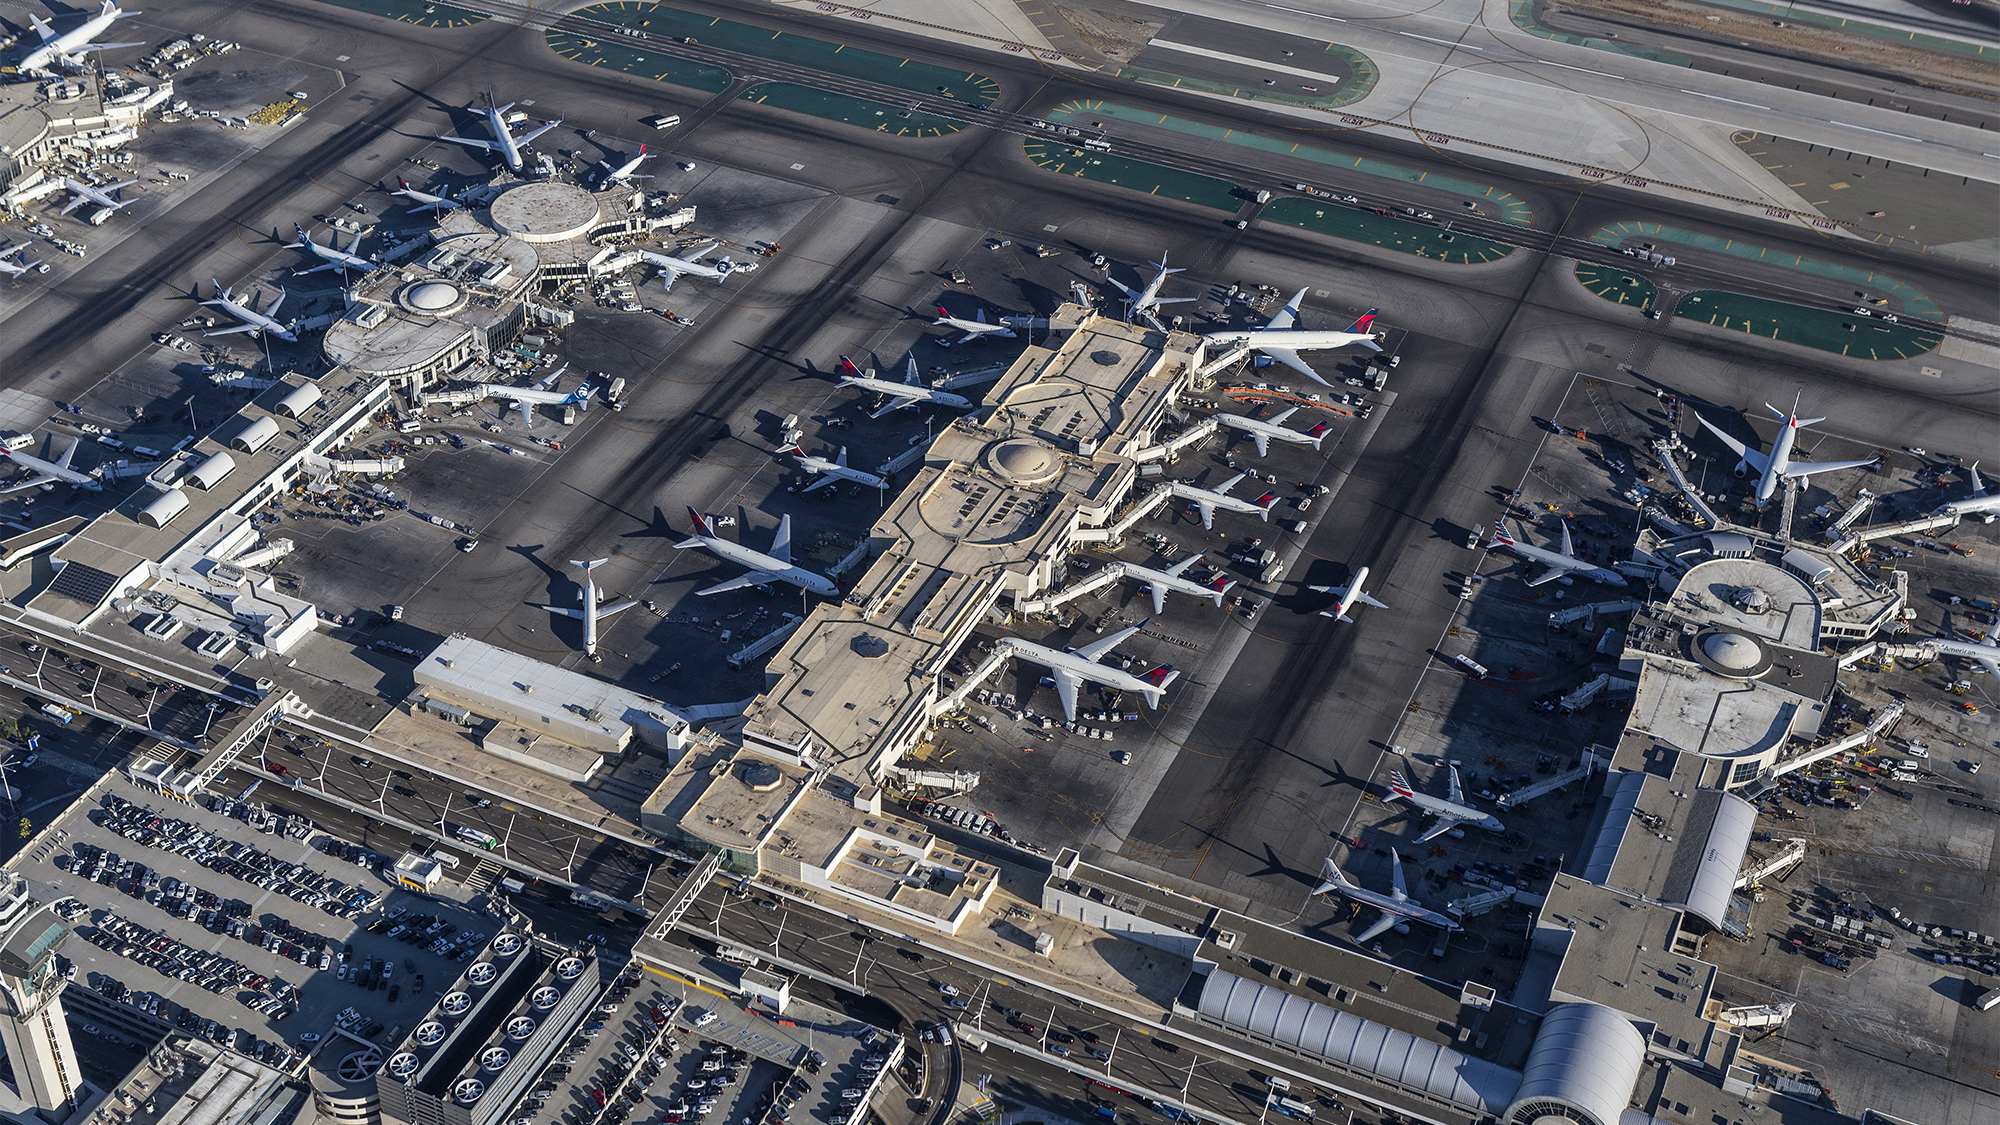 Great airline shuffle set to begin at LAX